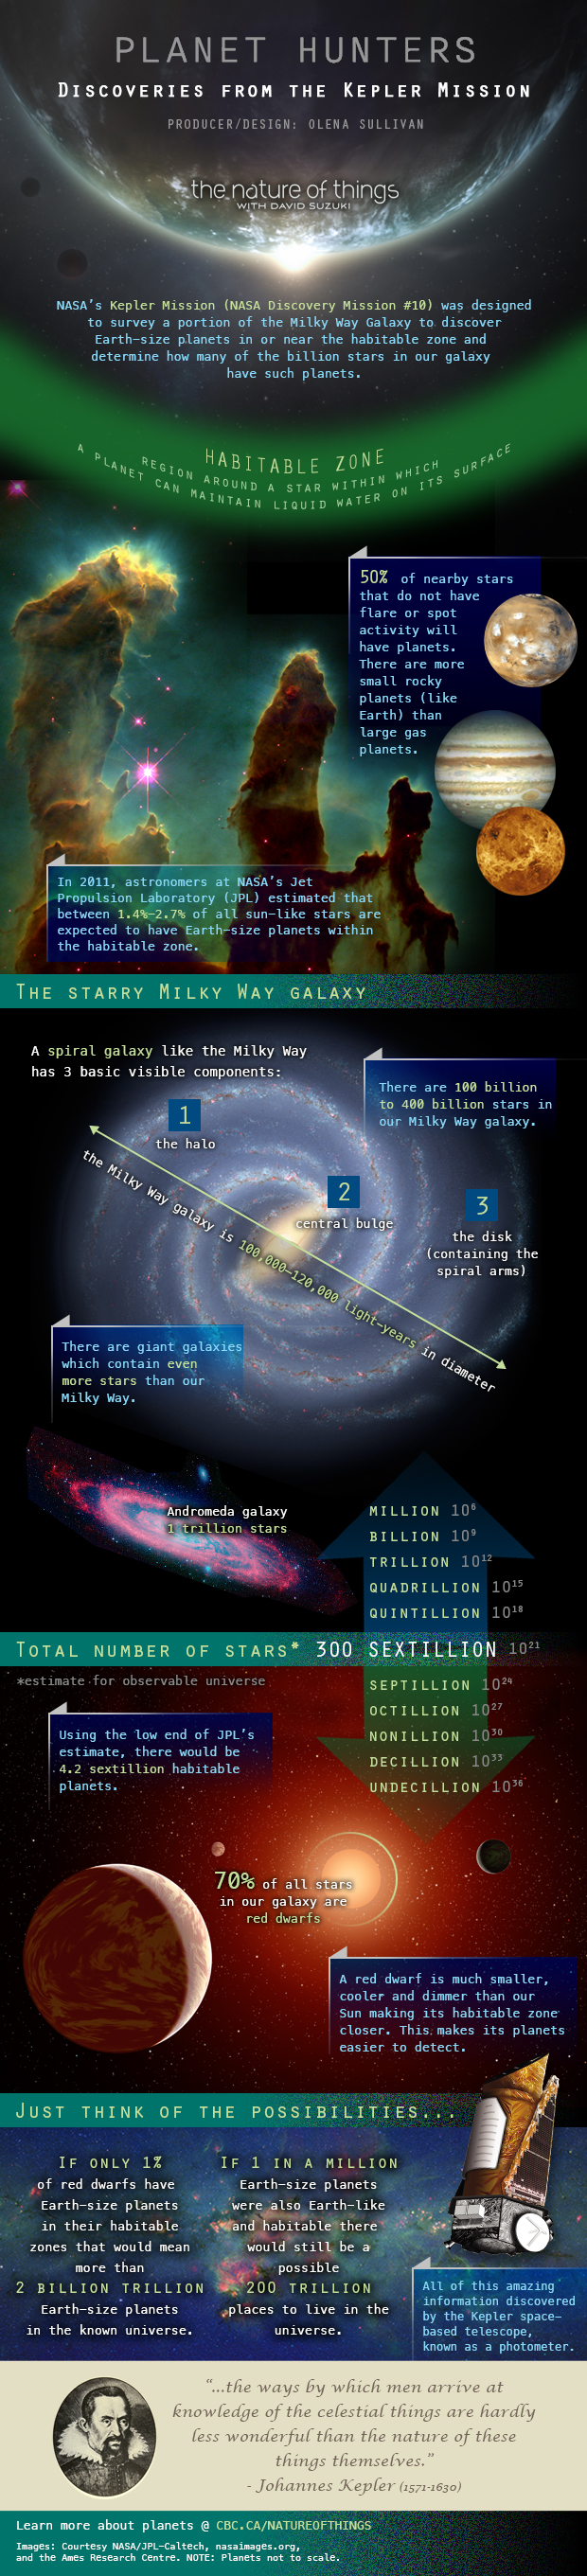 discoveries-from-the-kepler-mission_50b8d7b6c455c